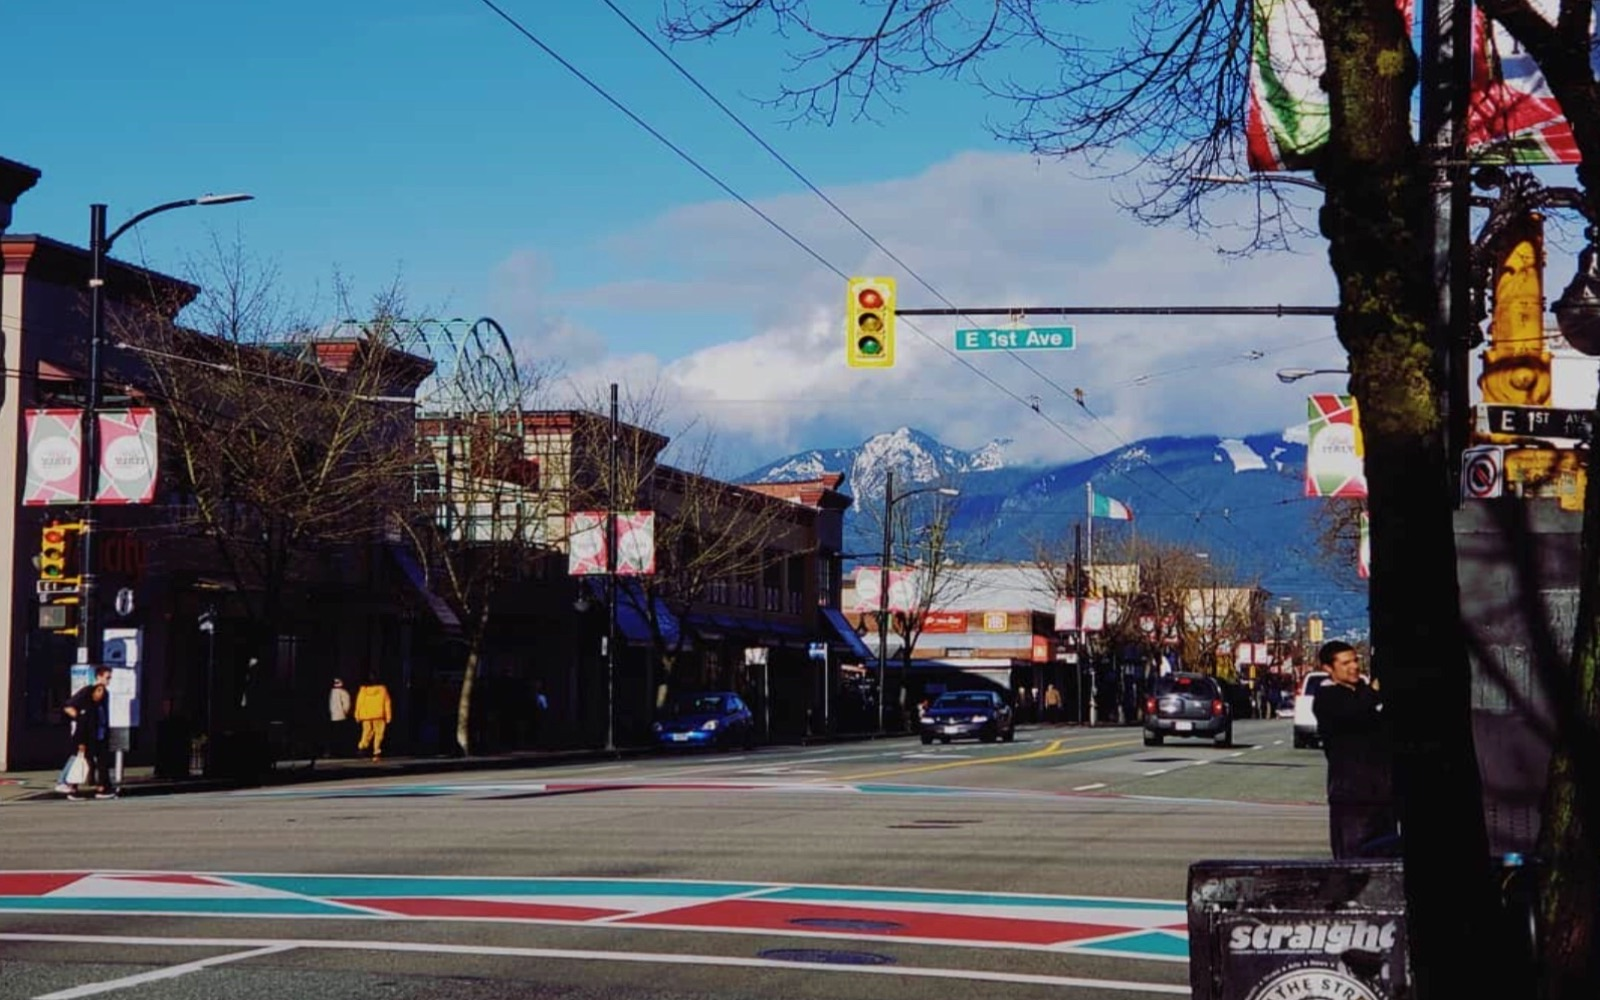 The intersection of 1st and Commercial, Little Italy Vancouver